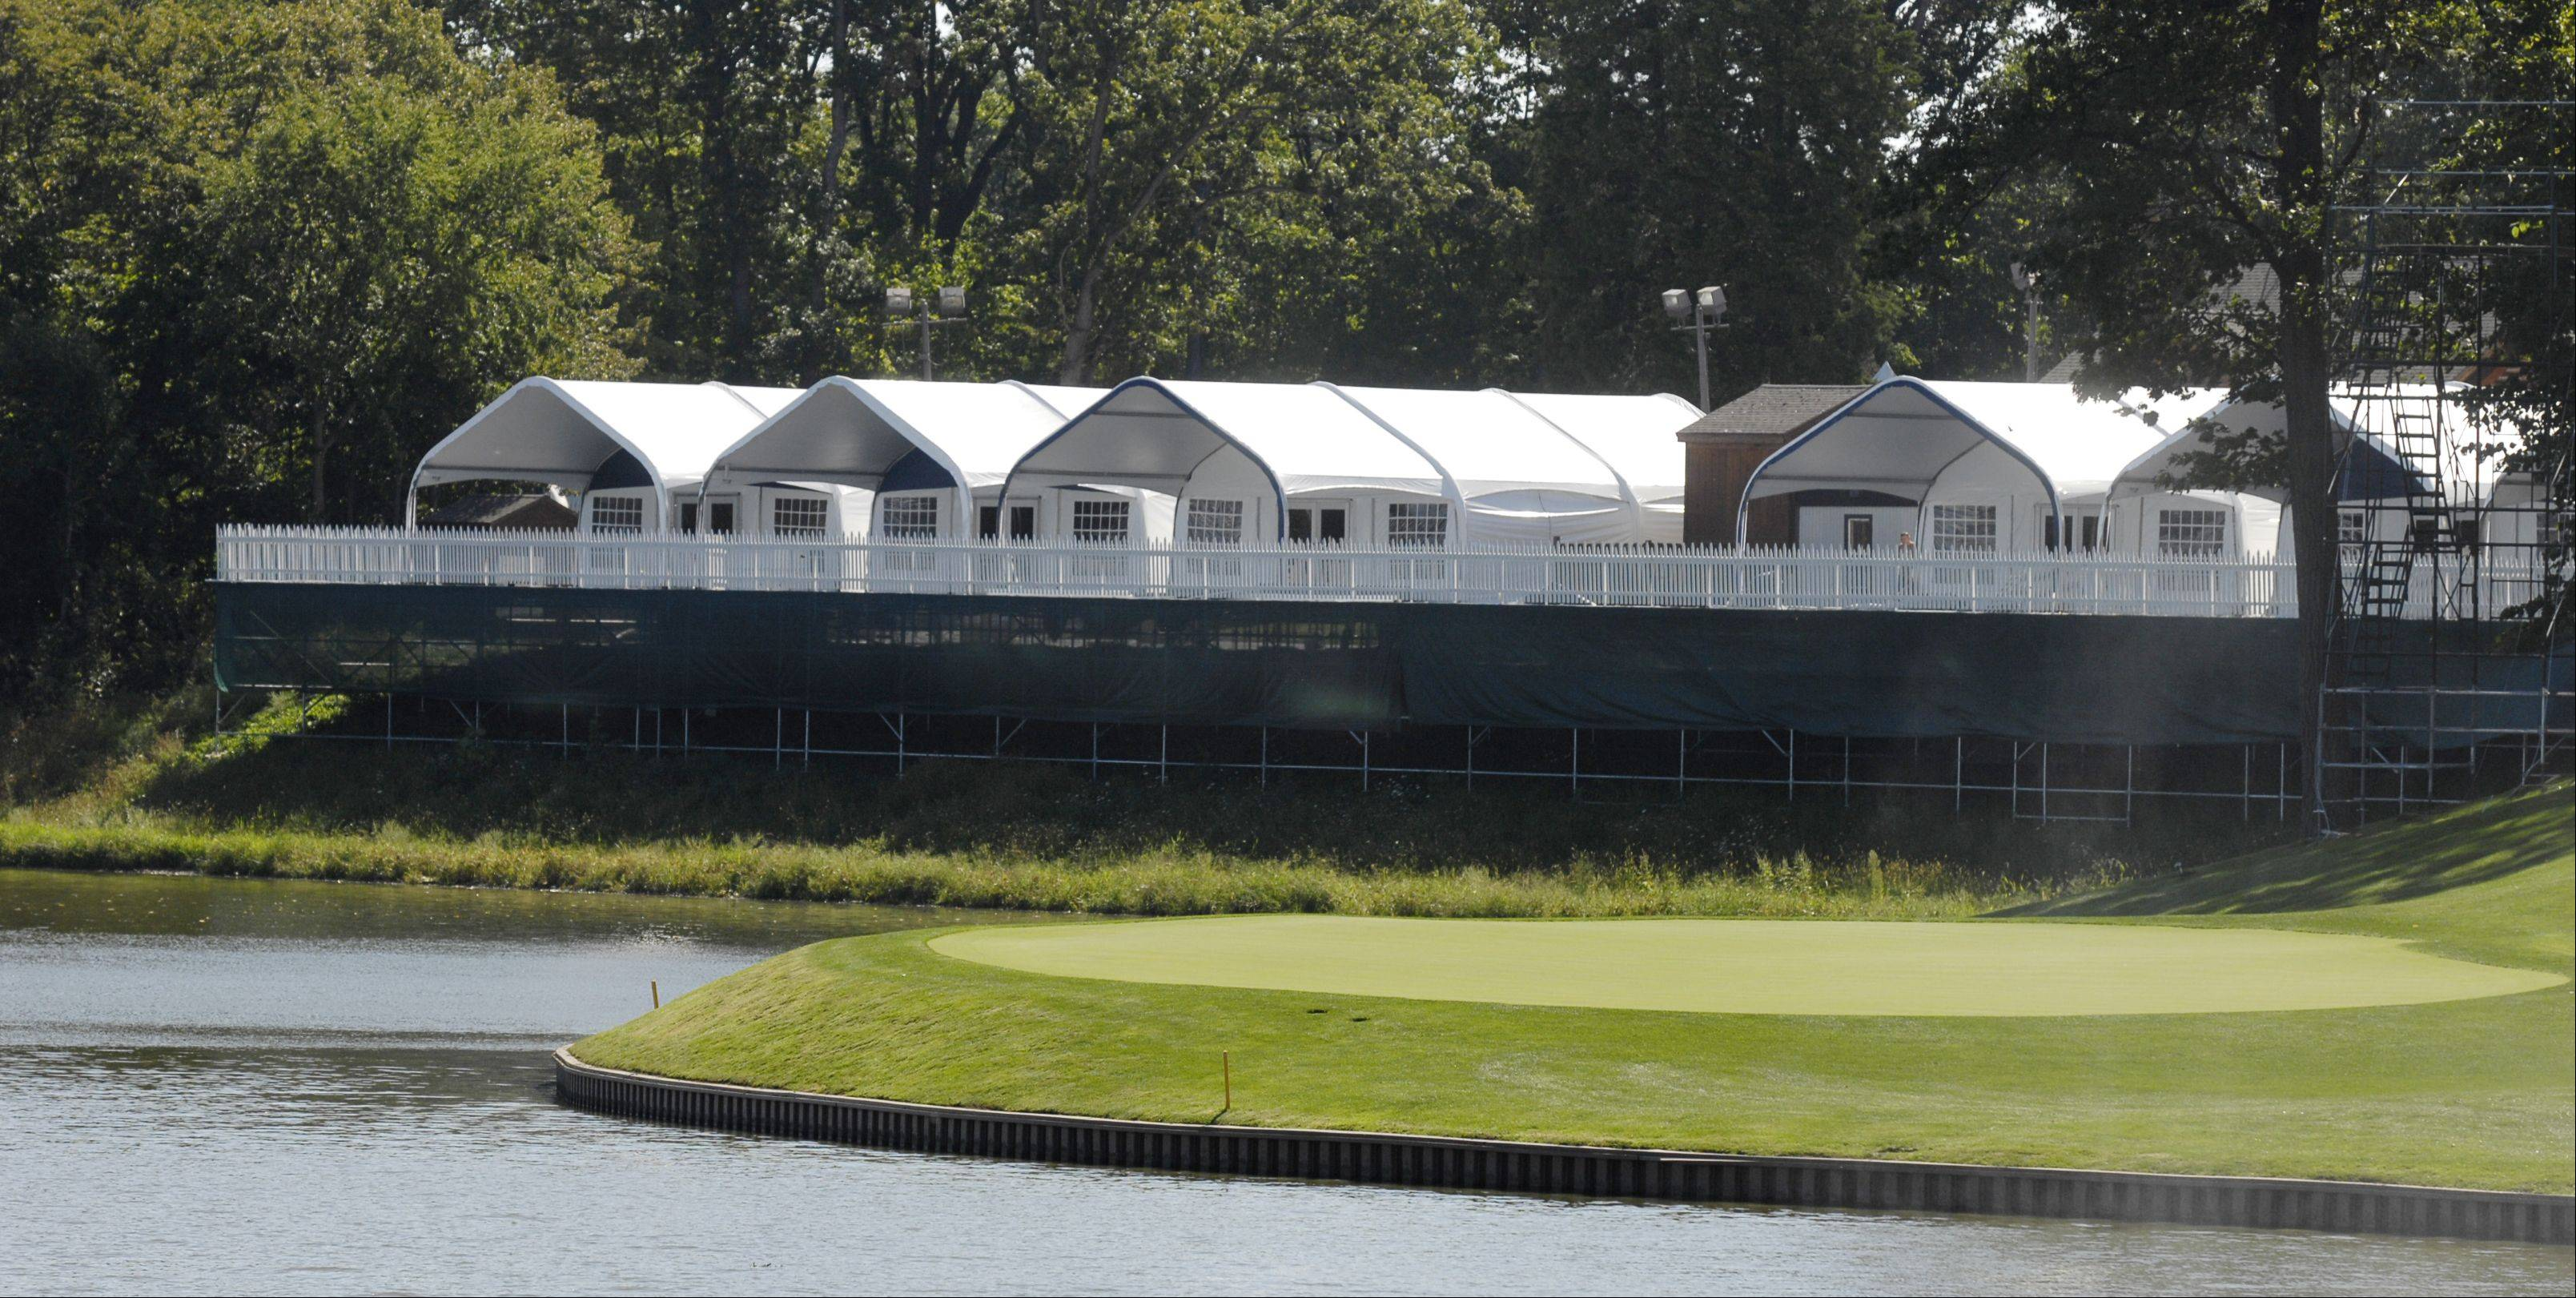 Ryder Cup corporate chalets at Medinah range in size from 50- to 300-guest tents and overlook the course and in some cases the lake.